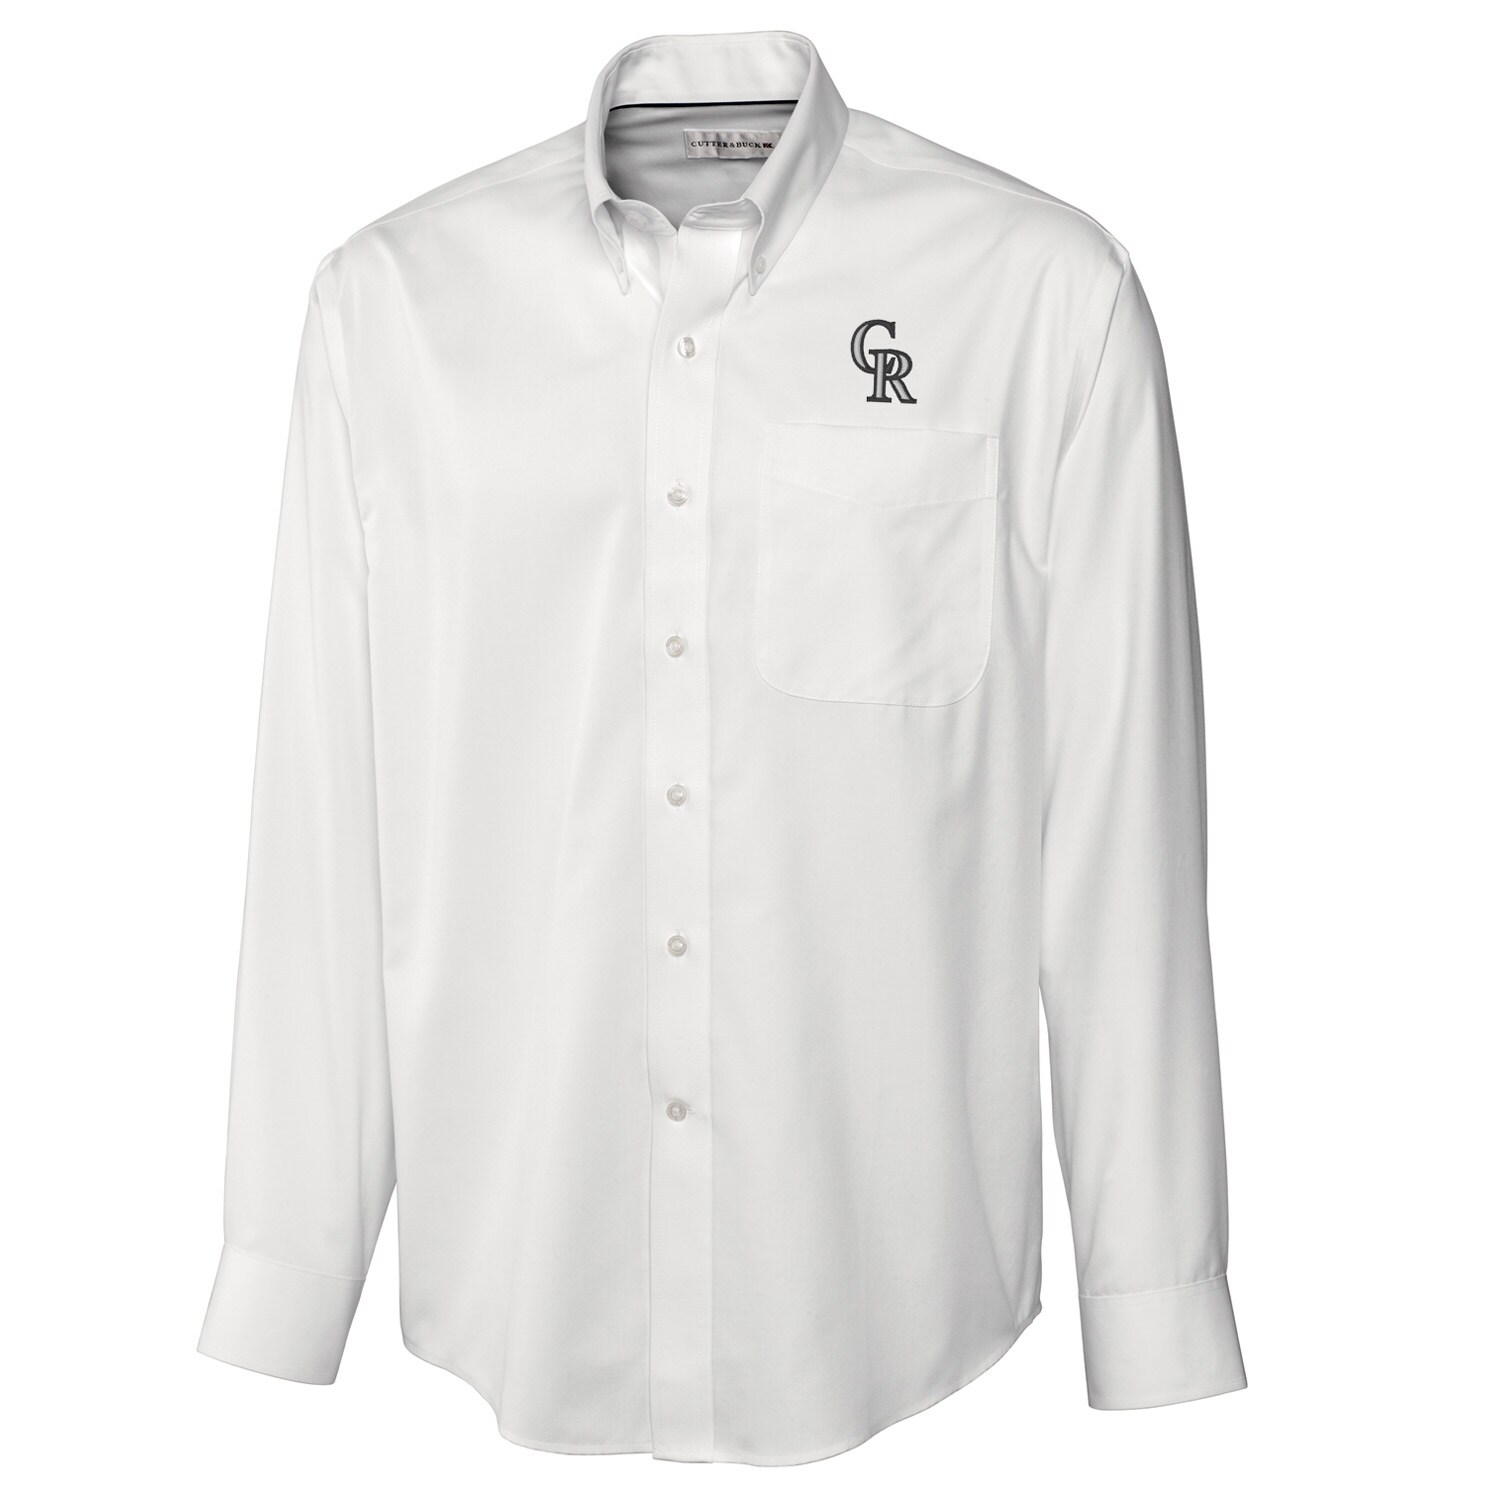 Colorado Rockies Cutter & Buck Big & Tall Epic Easy Care Fine Twill Long Sleeve Shirt - White